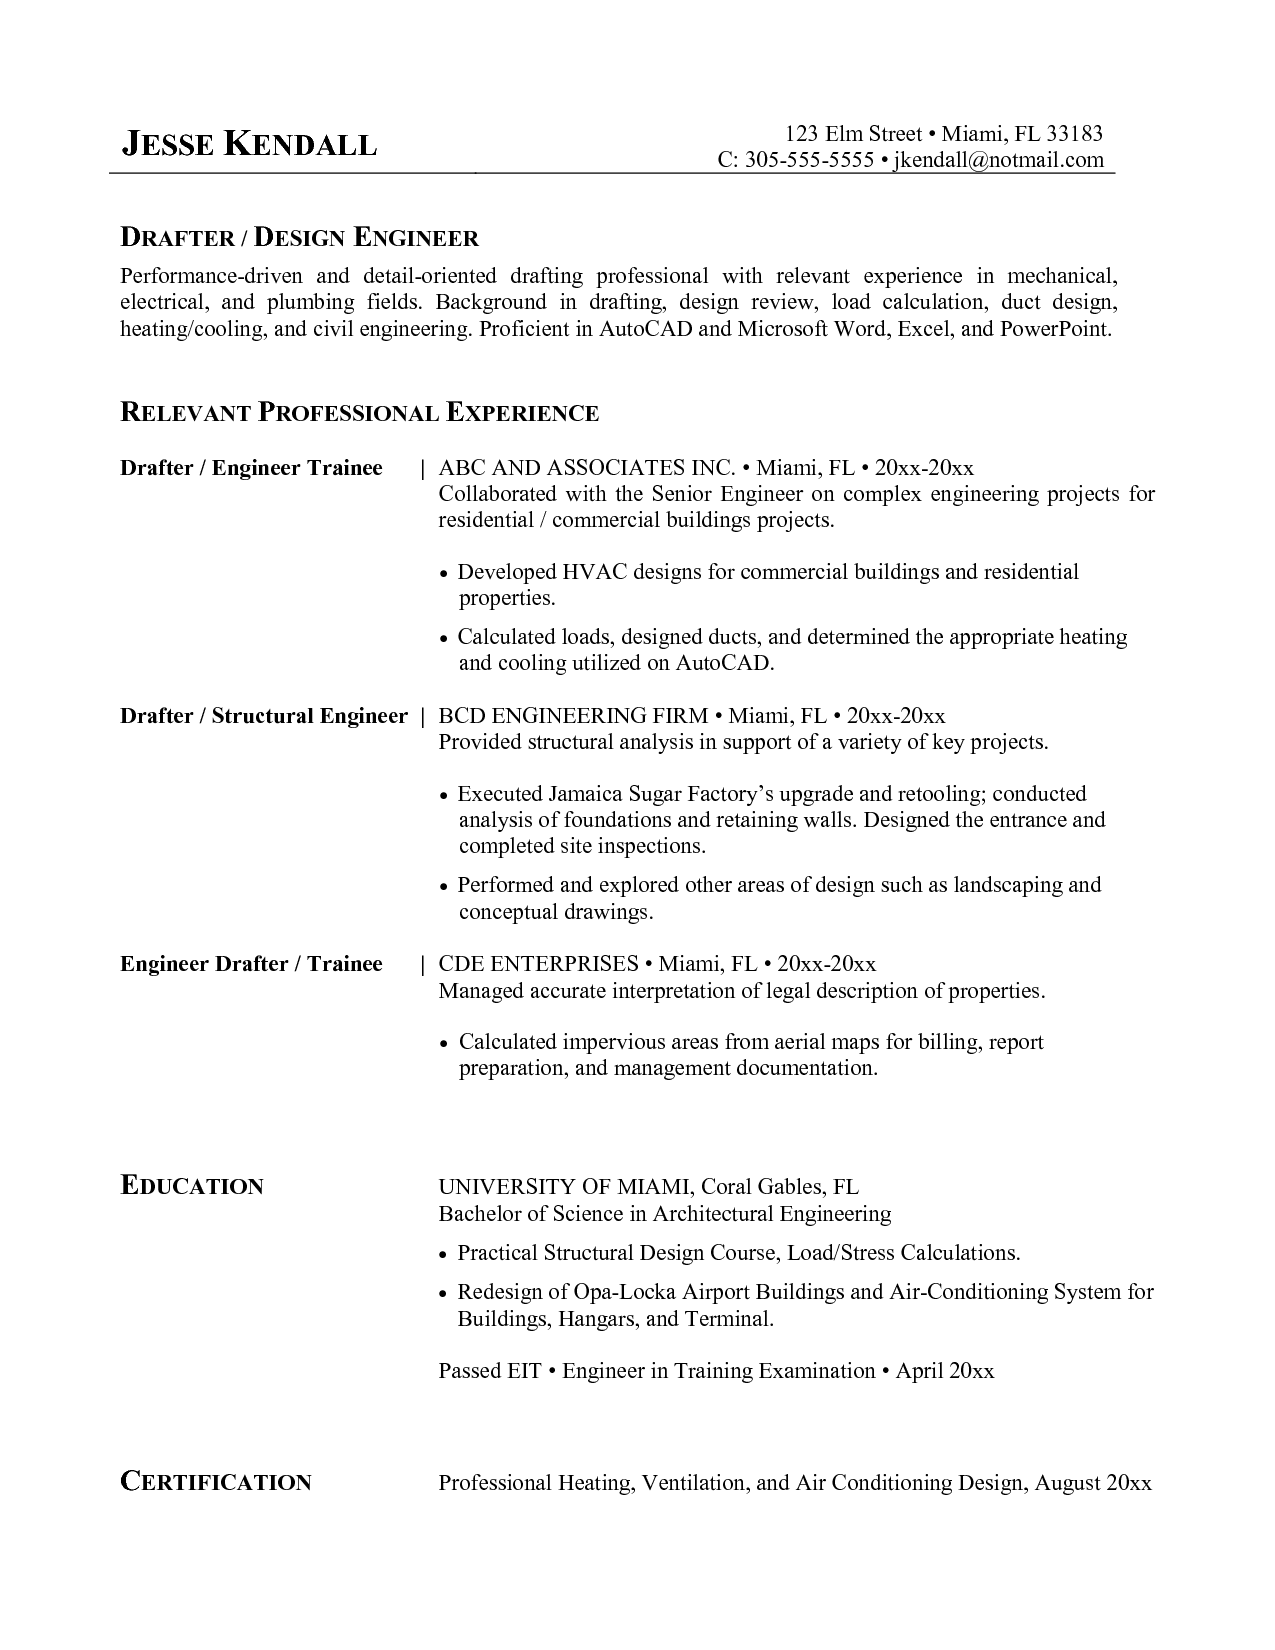 Top Hvac Engineer Resume Samples Domainlives